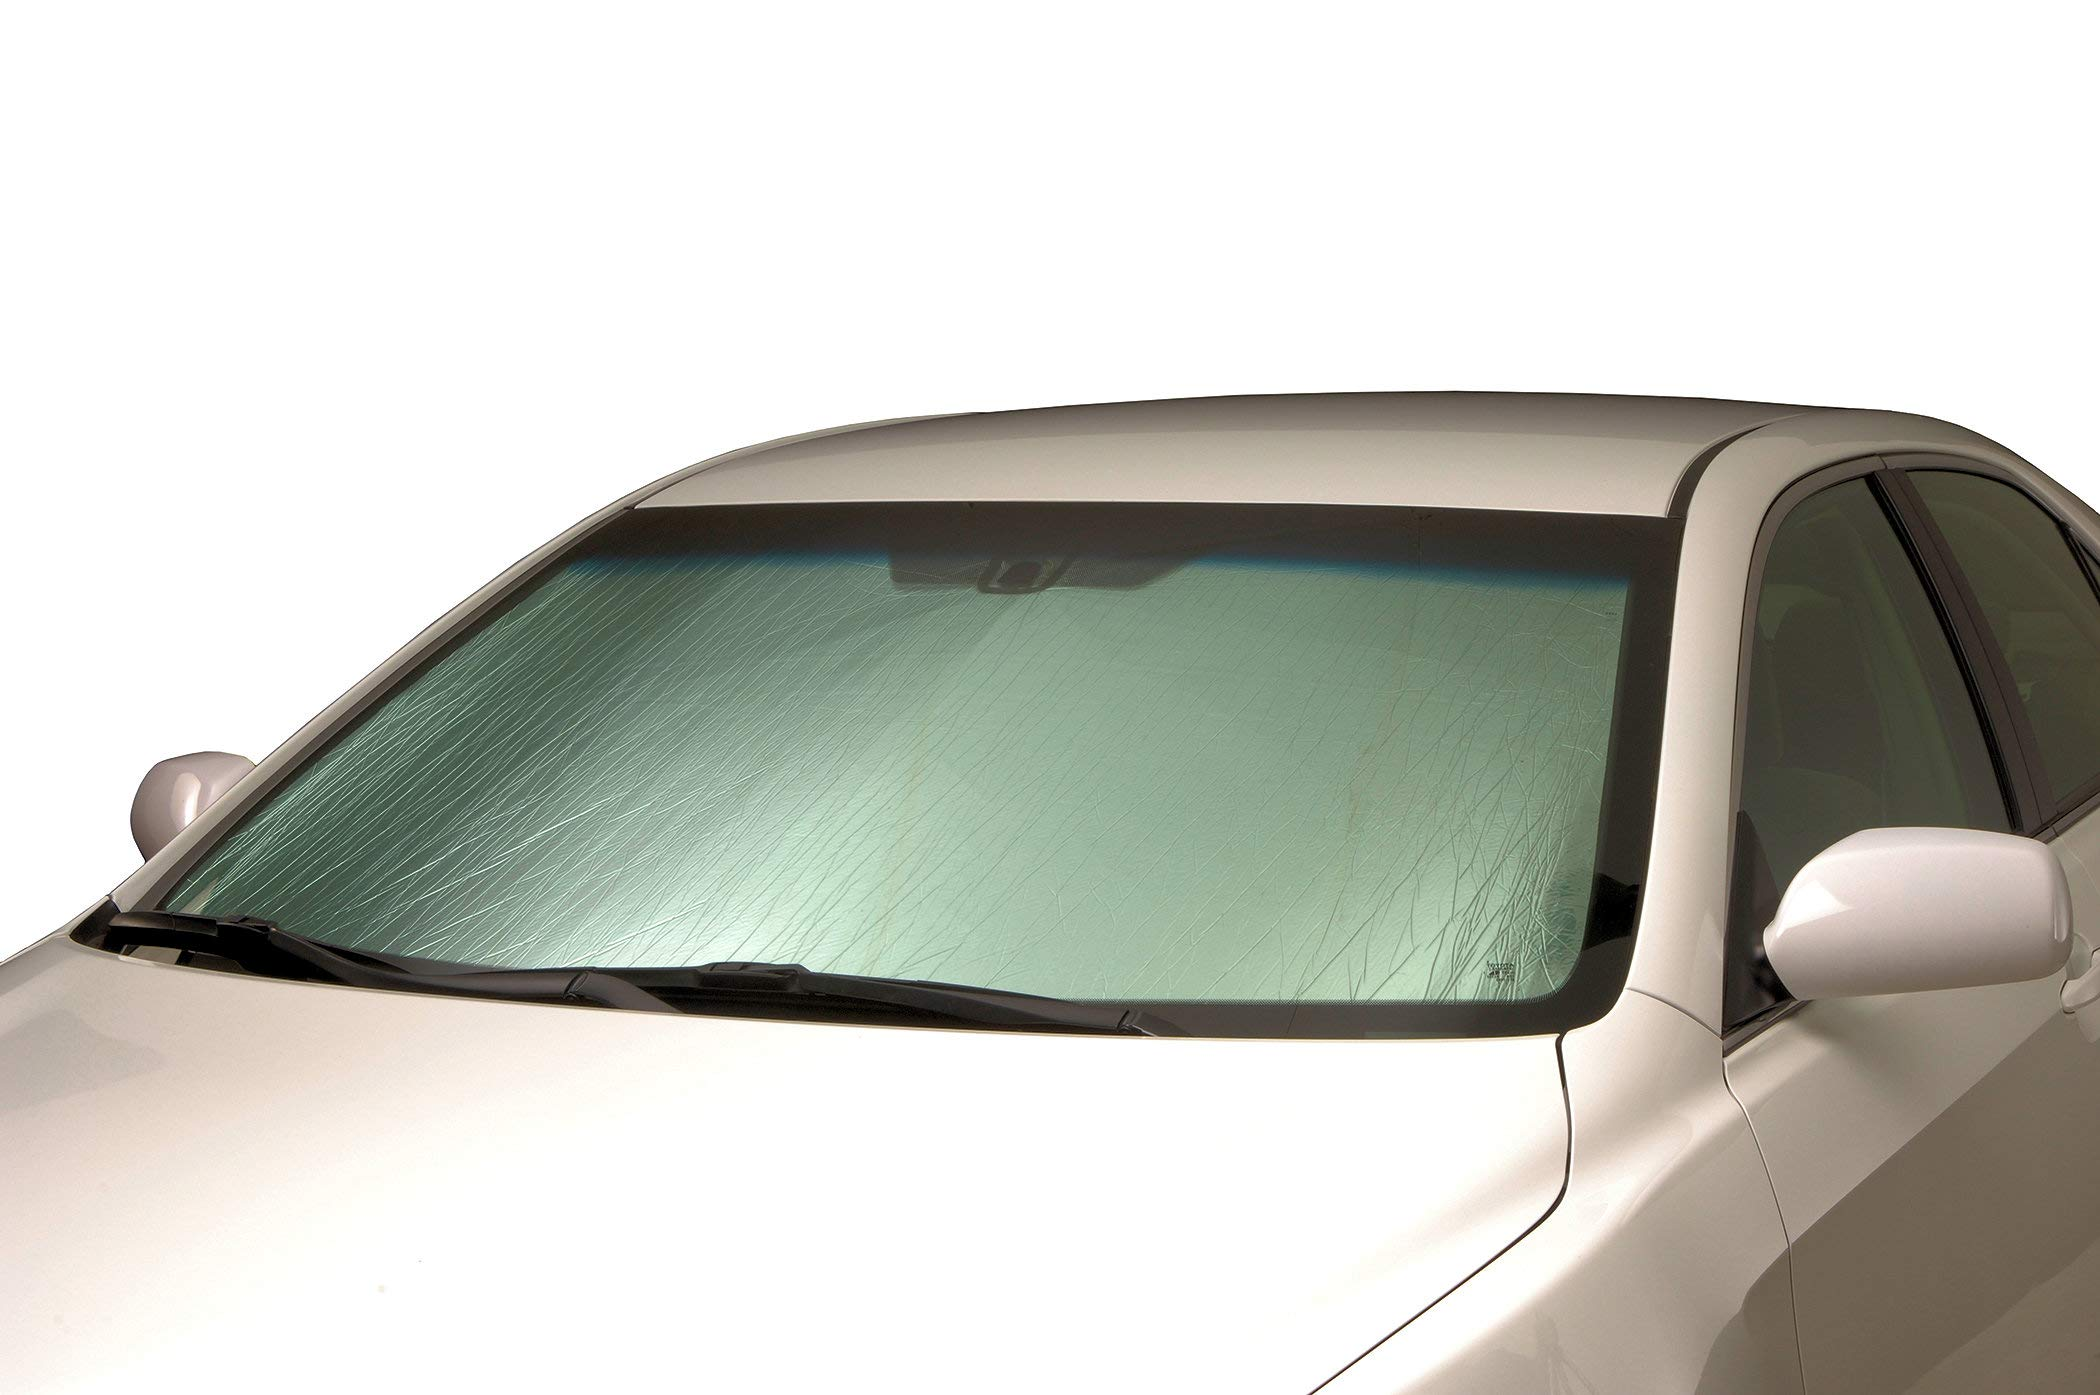 Intro-Tech VO-36 Silver Custom Fit Windshield Sunshade for Select Volvo XC60 Models